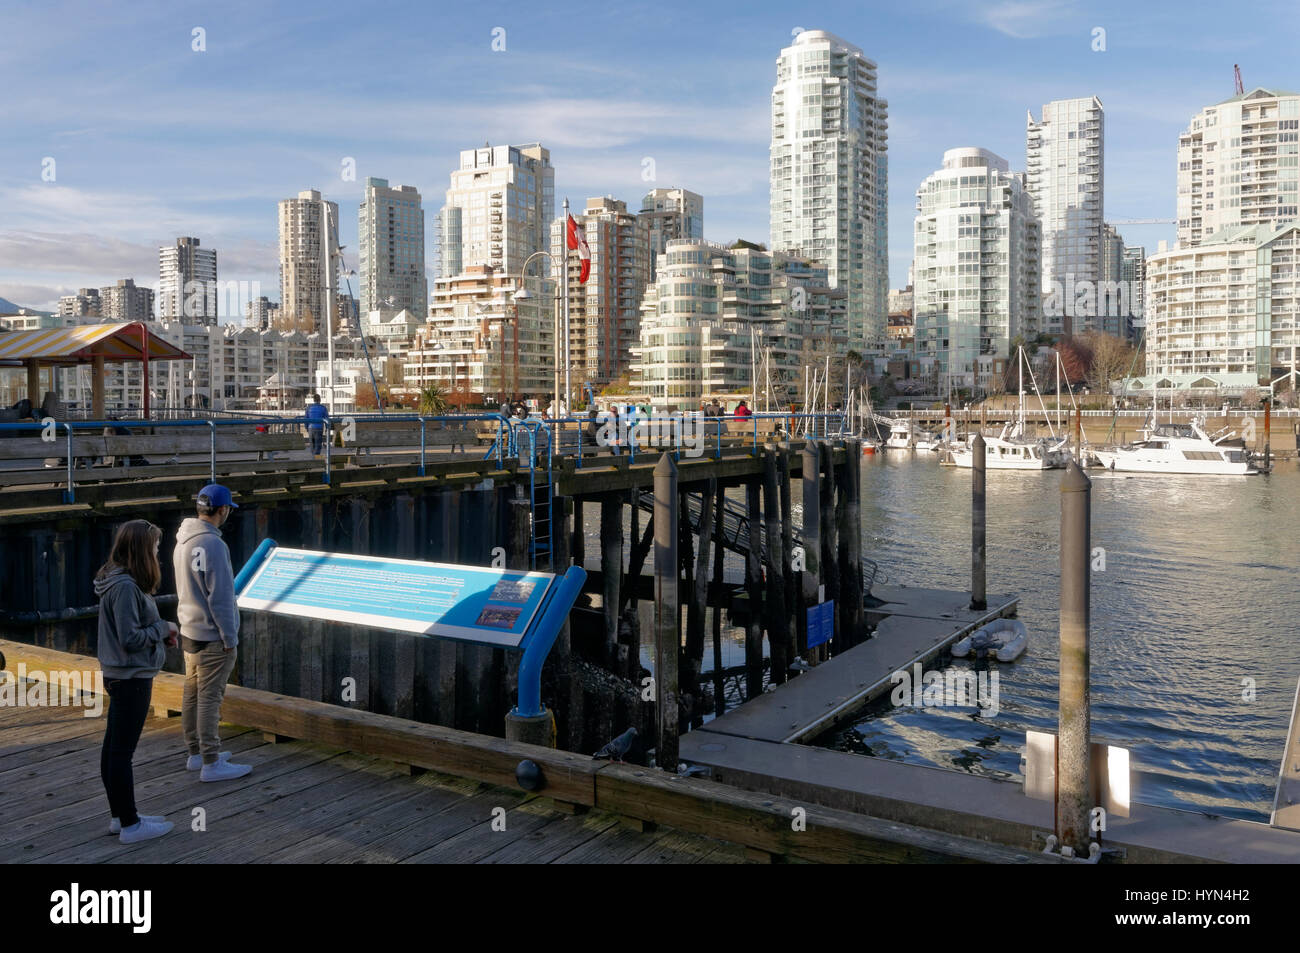 Granville island waterfront with False Creek and downtown condominium towers in back, Vancouver, British Columbia, - Stock Image